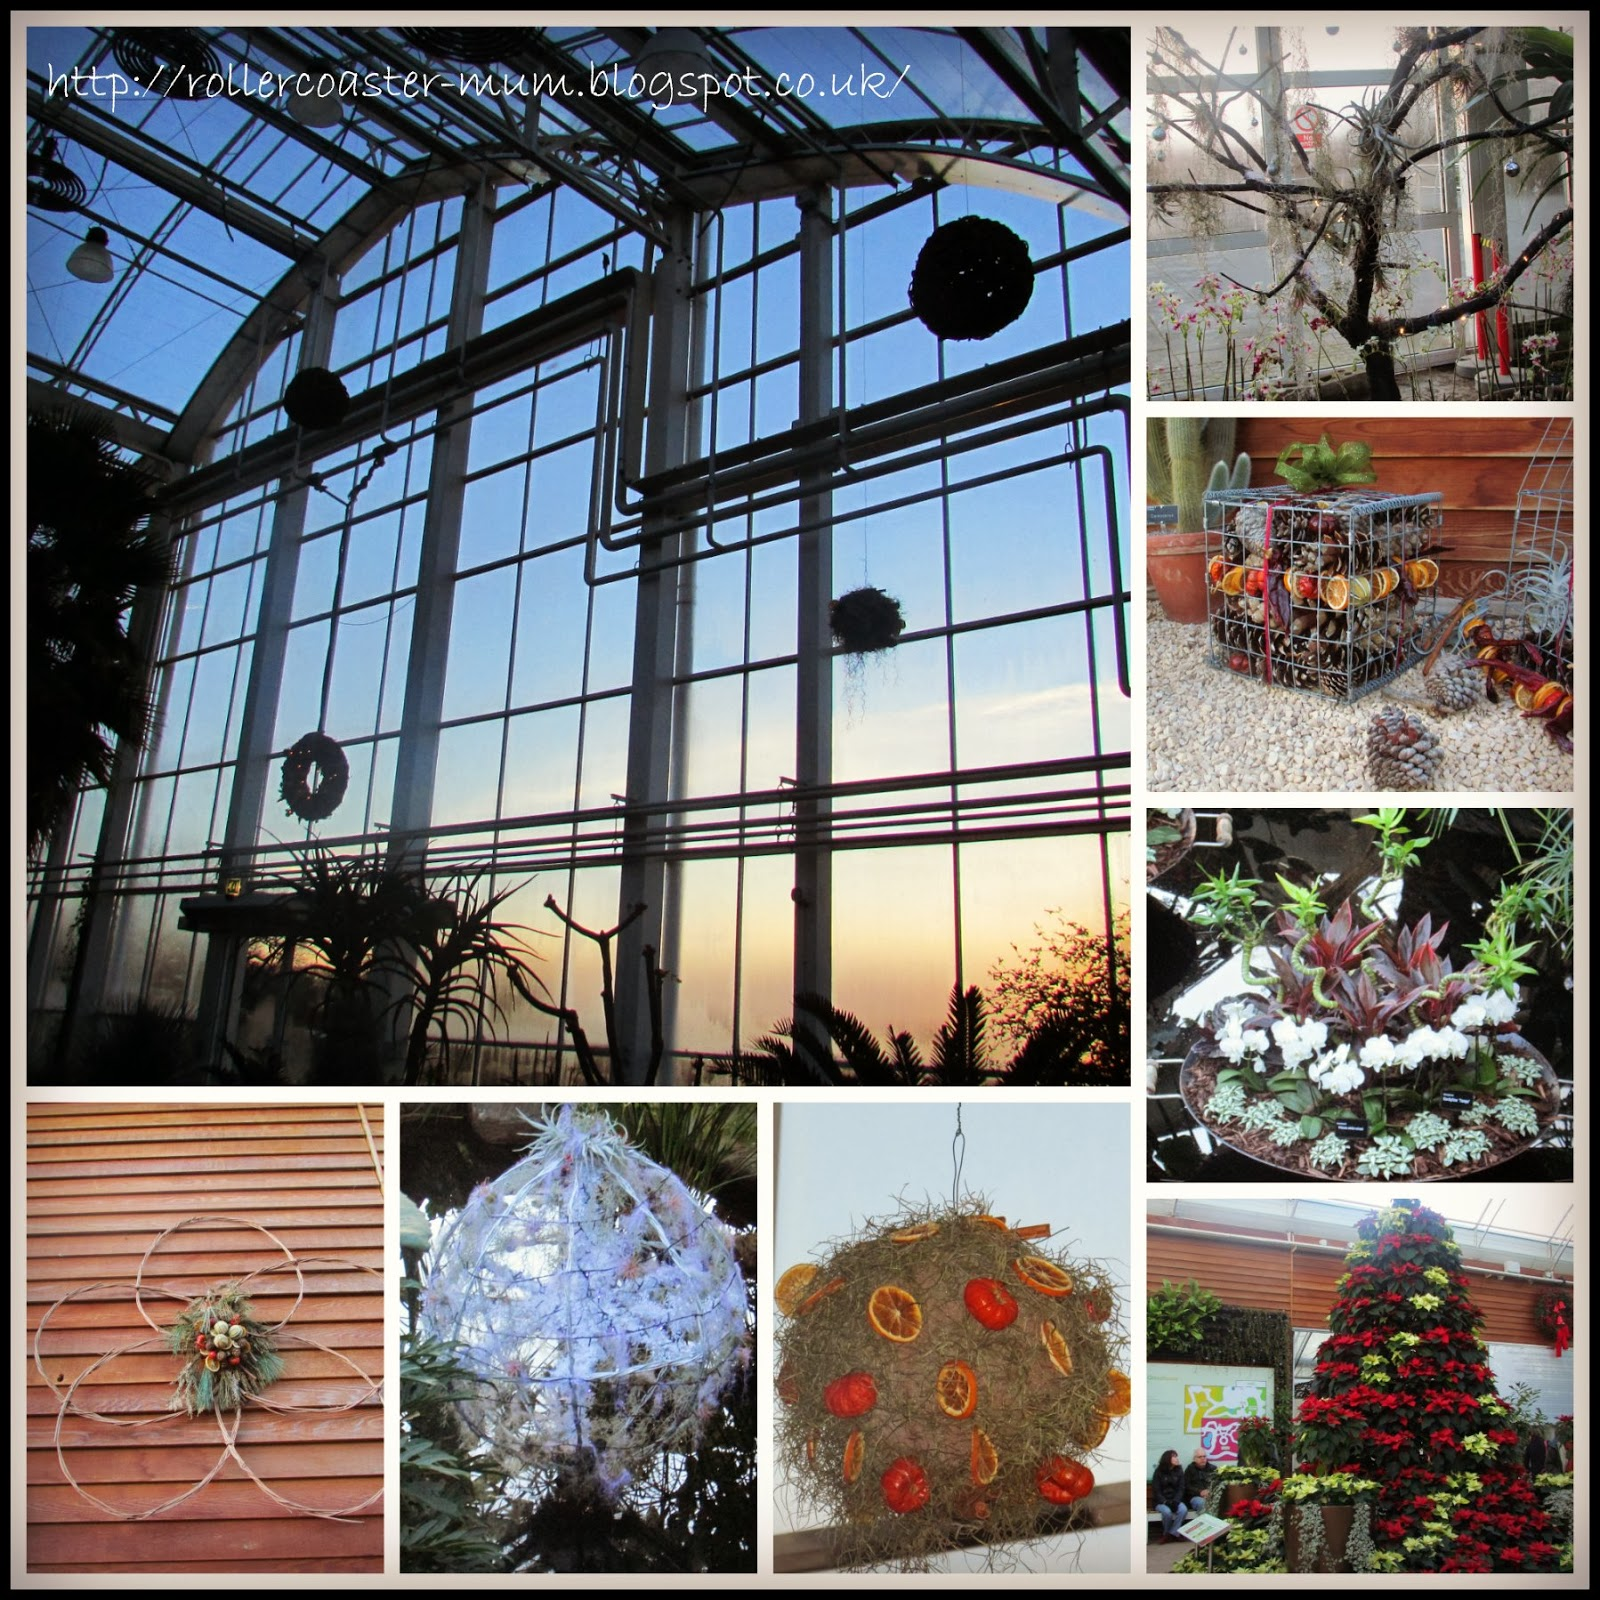 Beautiful natural Christmas decorations in the Glasshouse, RHS Wisley